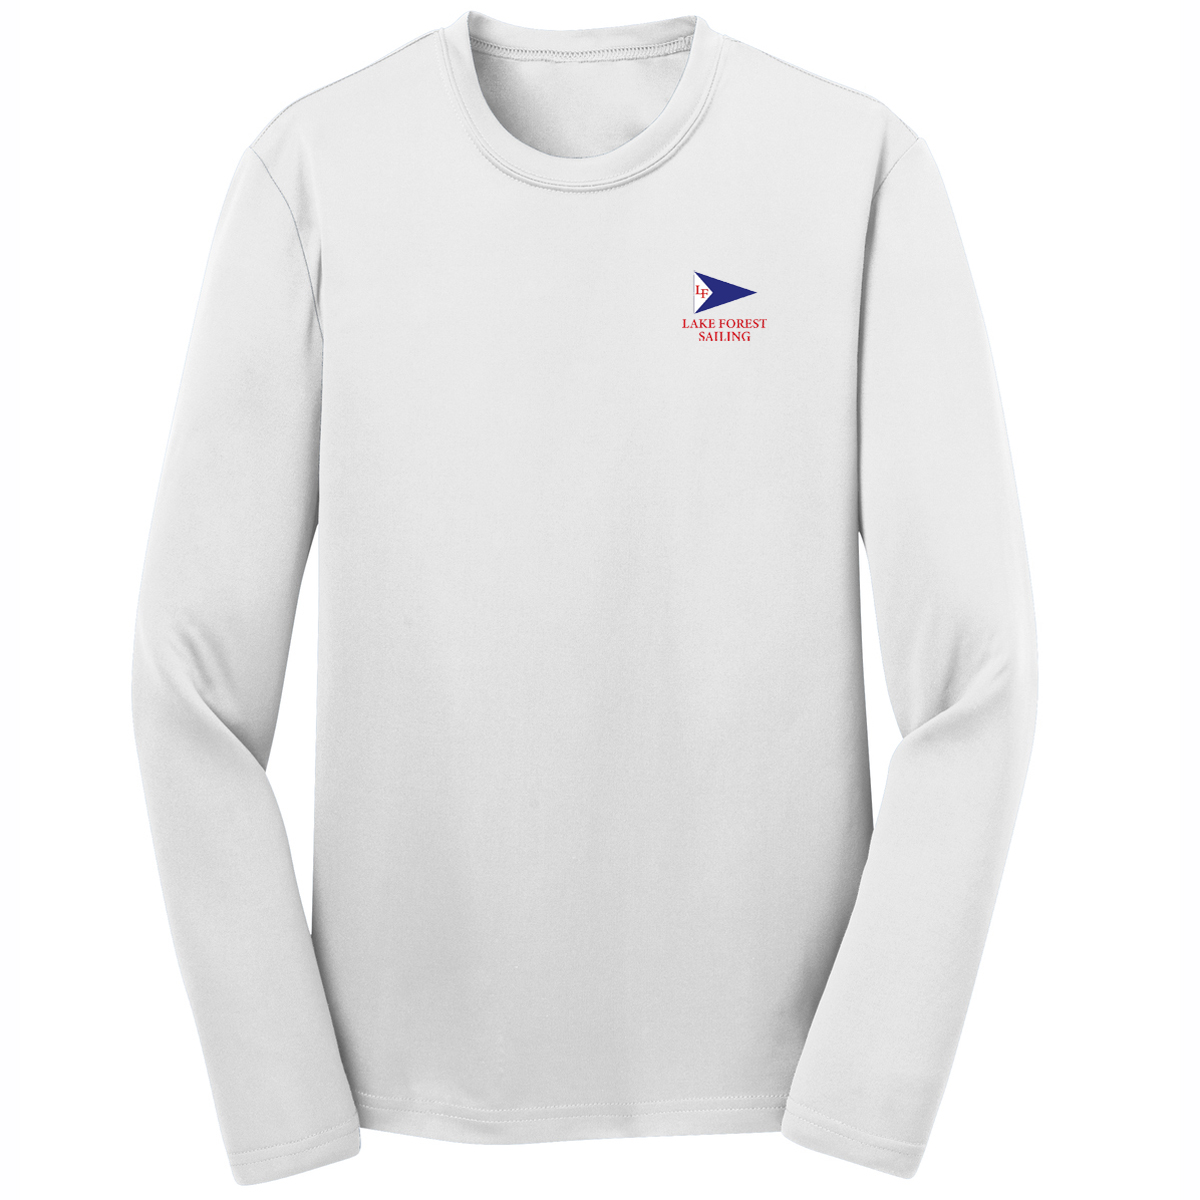 LAKE FOREST SAILING K'S L/S TECH TEE